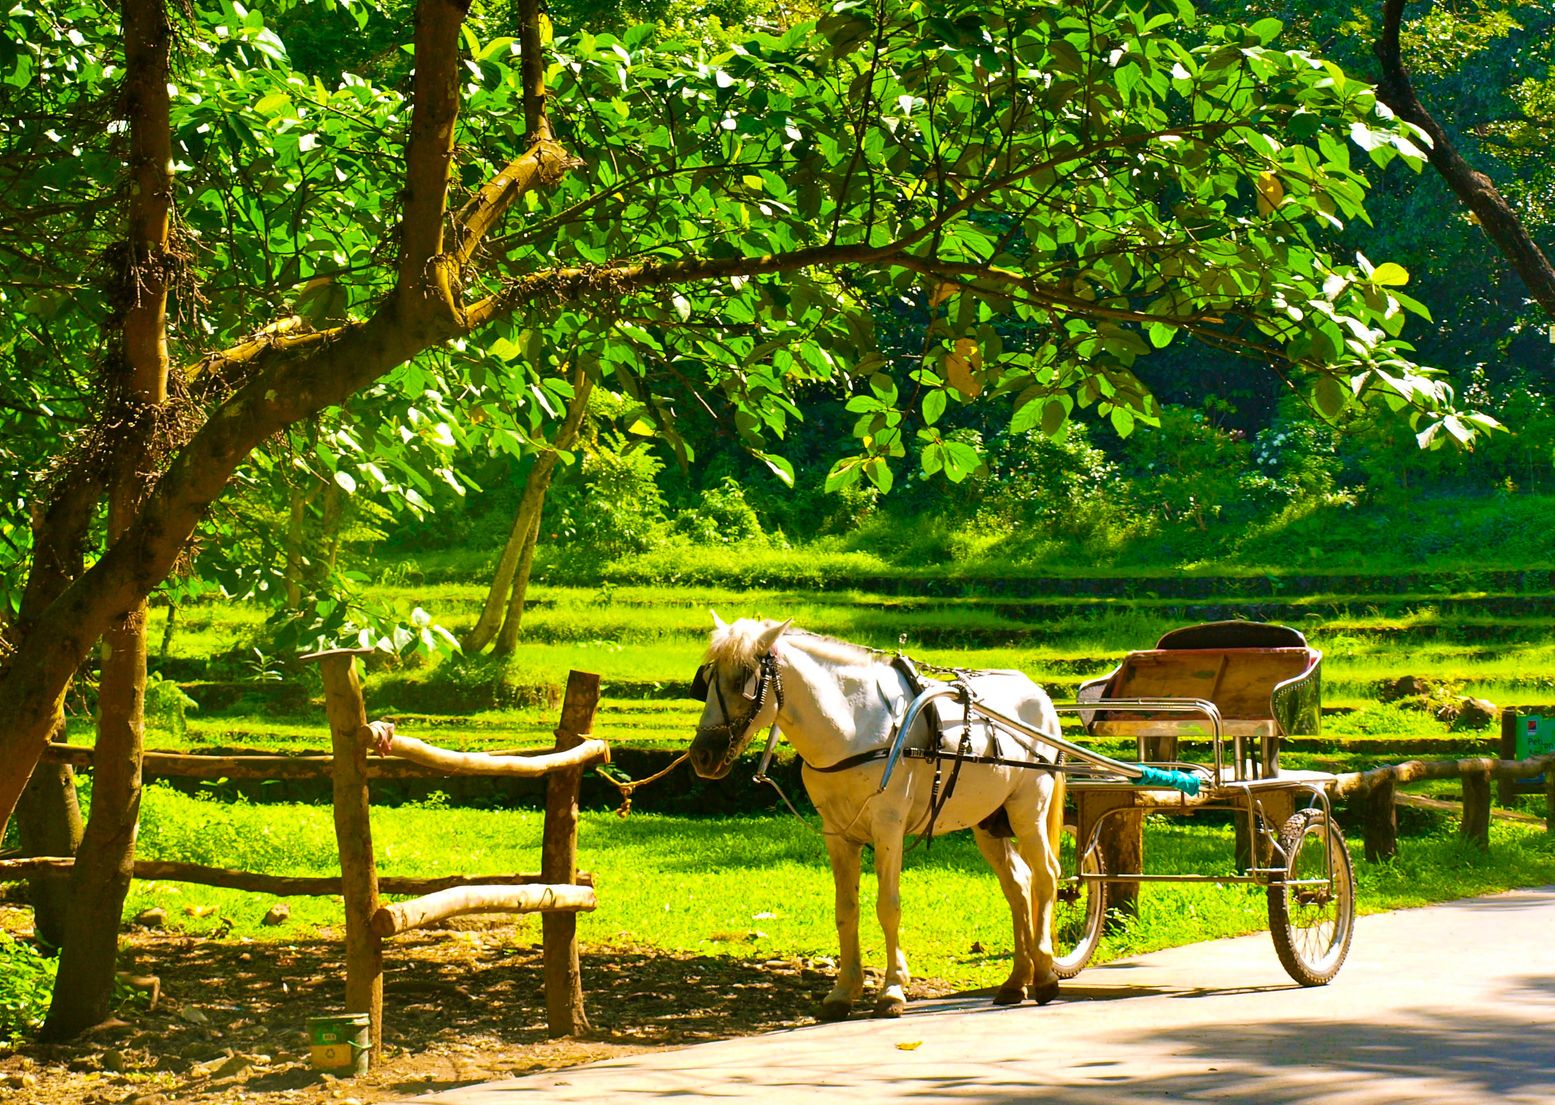 A makeshift horse-drawn cart parked on a road beneath a tree and beside a fence